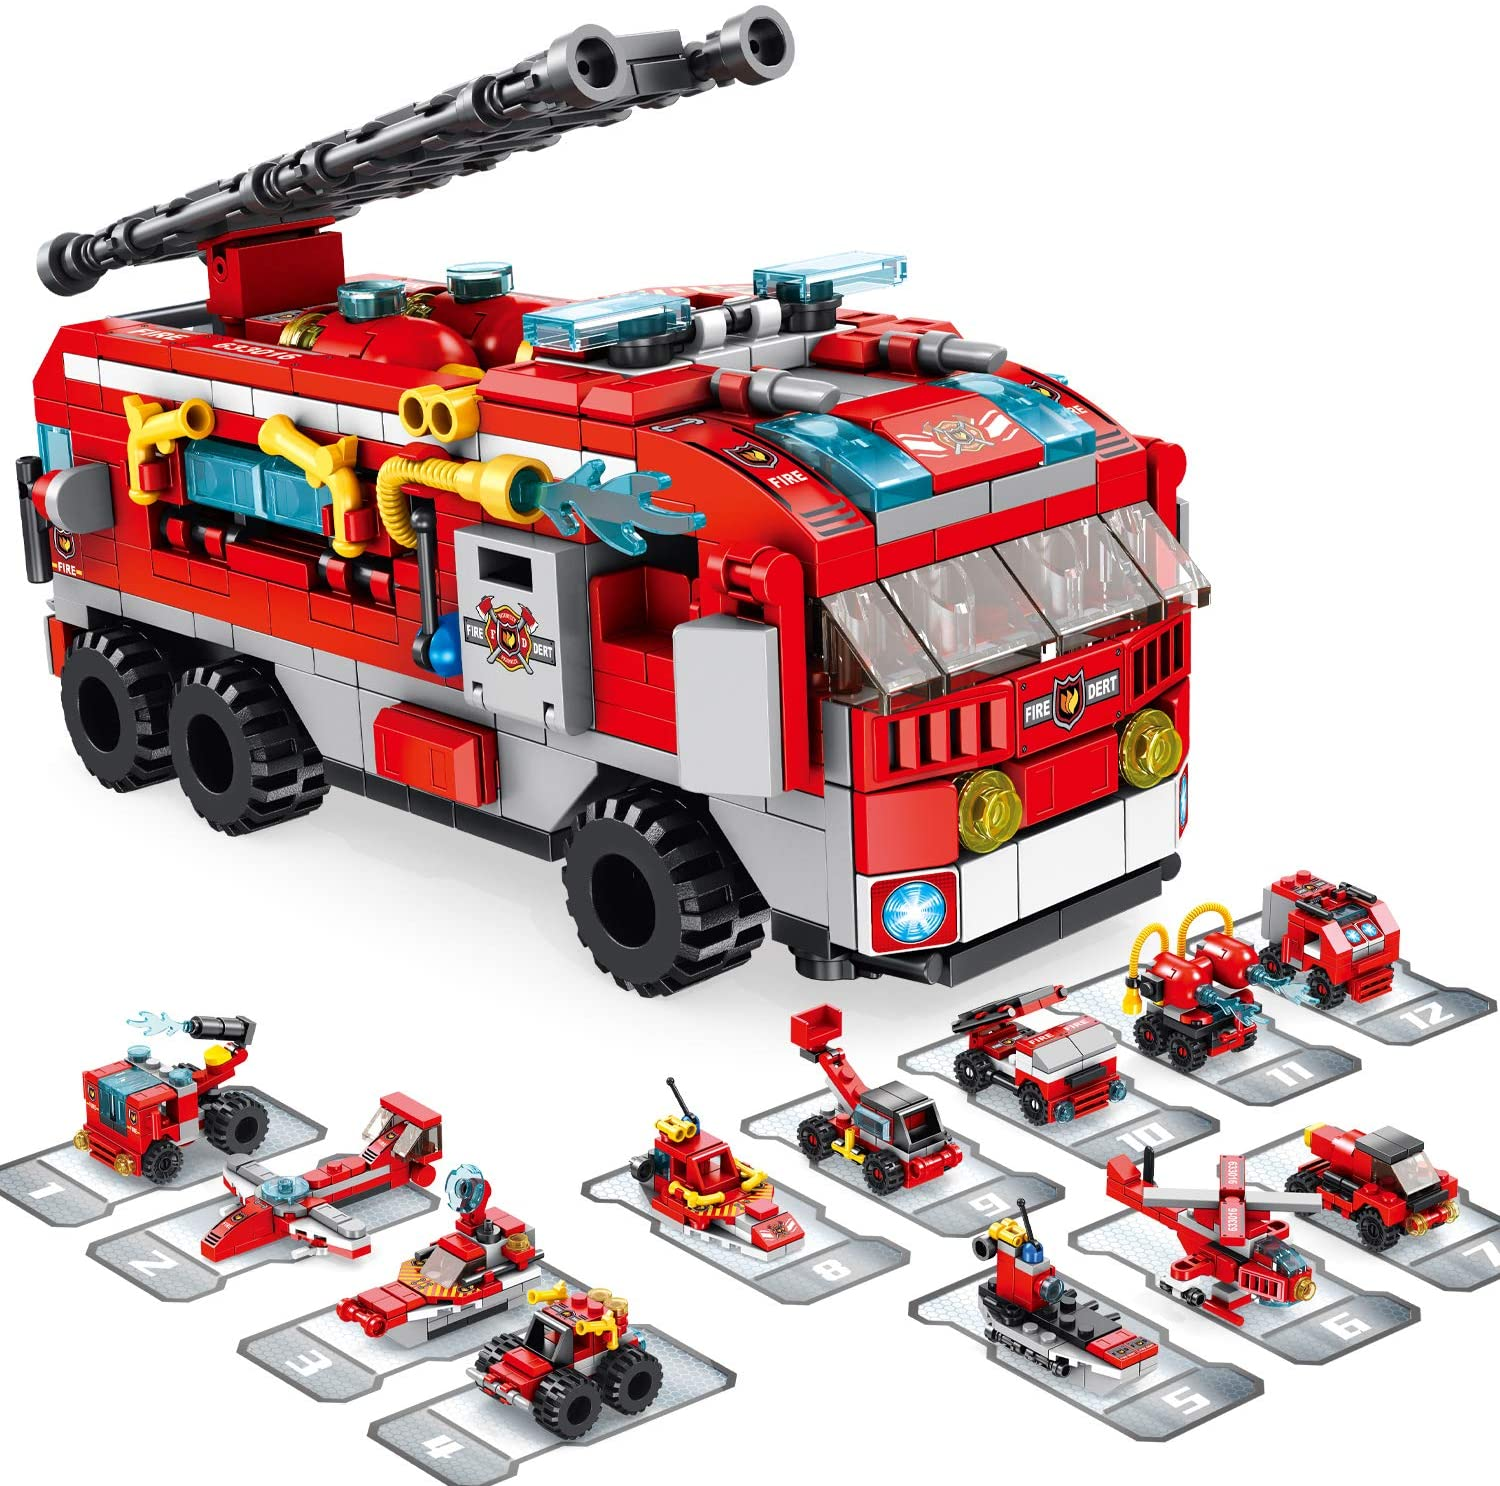 brusionly STEM Building Toys, Toys for 6 Year Old Boys 561 PCS Fire Truck 25 Forms STEM Activities for Kids Ages 5-7 Fire Rescue Vehicles Kit|Best Gifts for 5 6 7 8 9 10 11 12 Year Old Boys